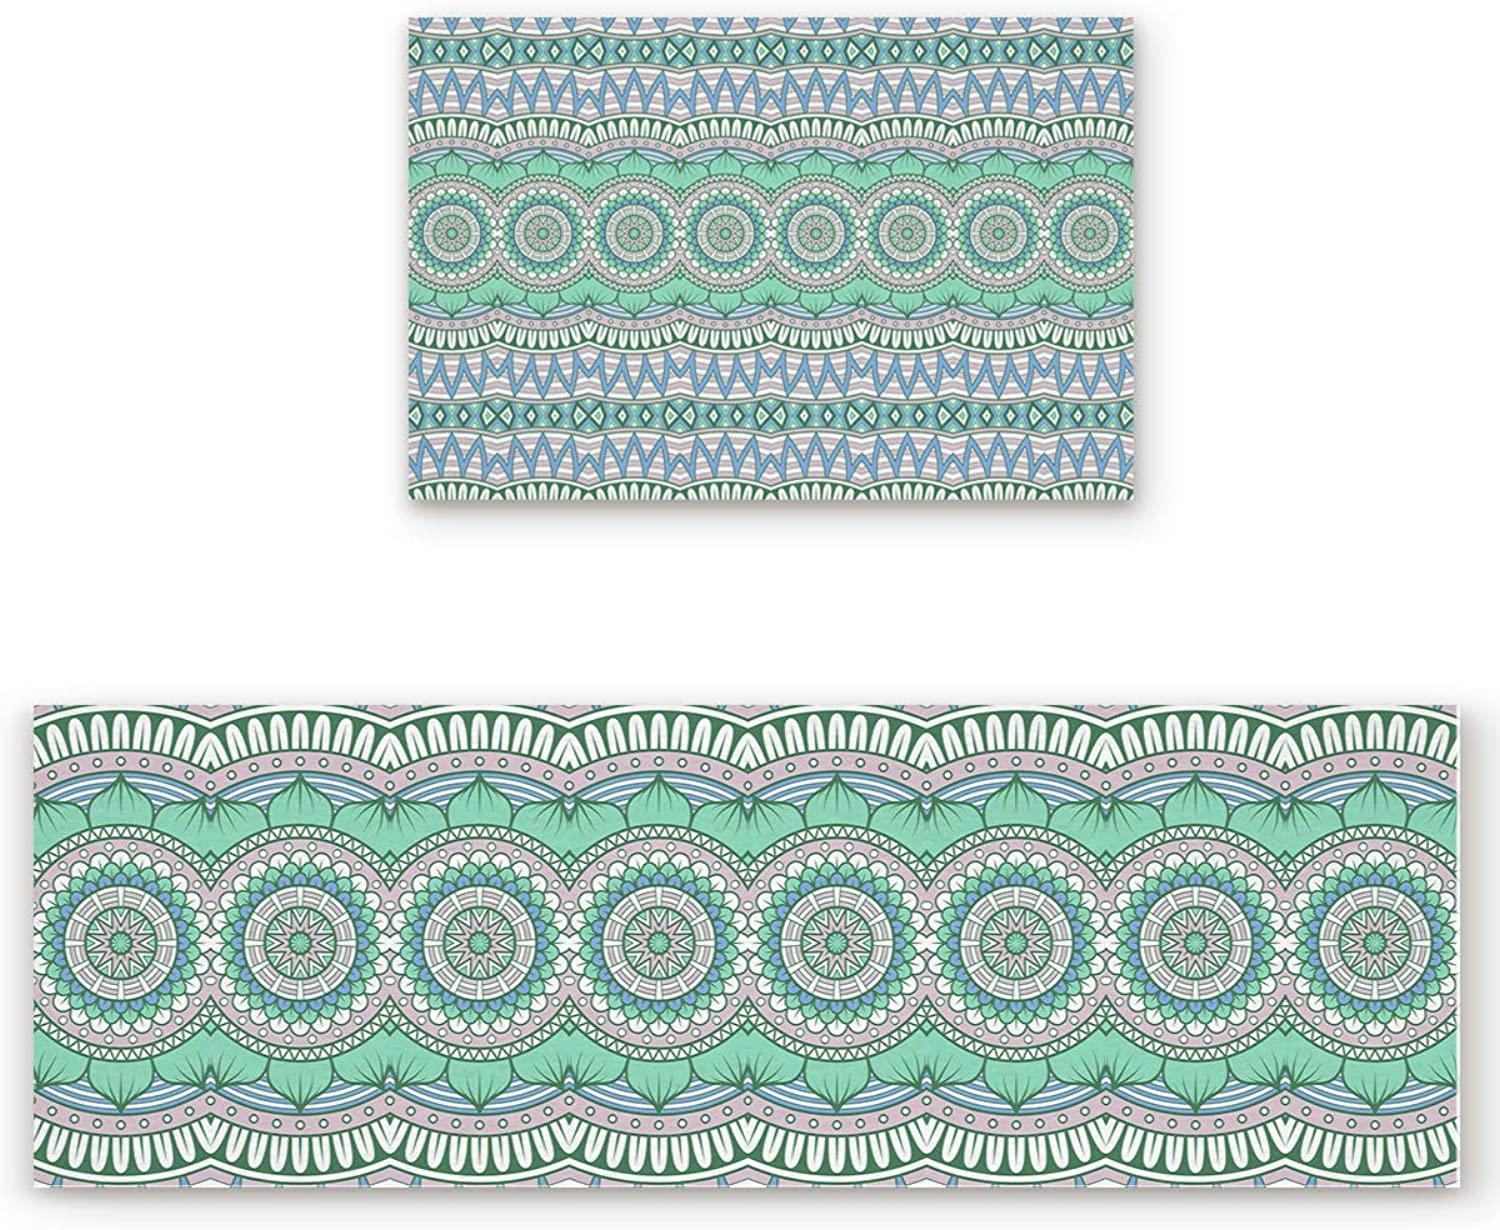 SODIKA 2 Pieces Kitchen Rug Set,Non-Skid Slip Washable Doormat Floor Runner Bathroom Area Rug Carpet,Mandala Boho Style (19.7x31.5in+19.7x63 inches)